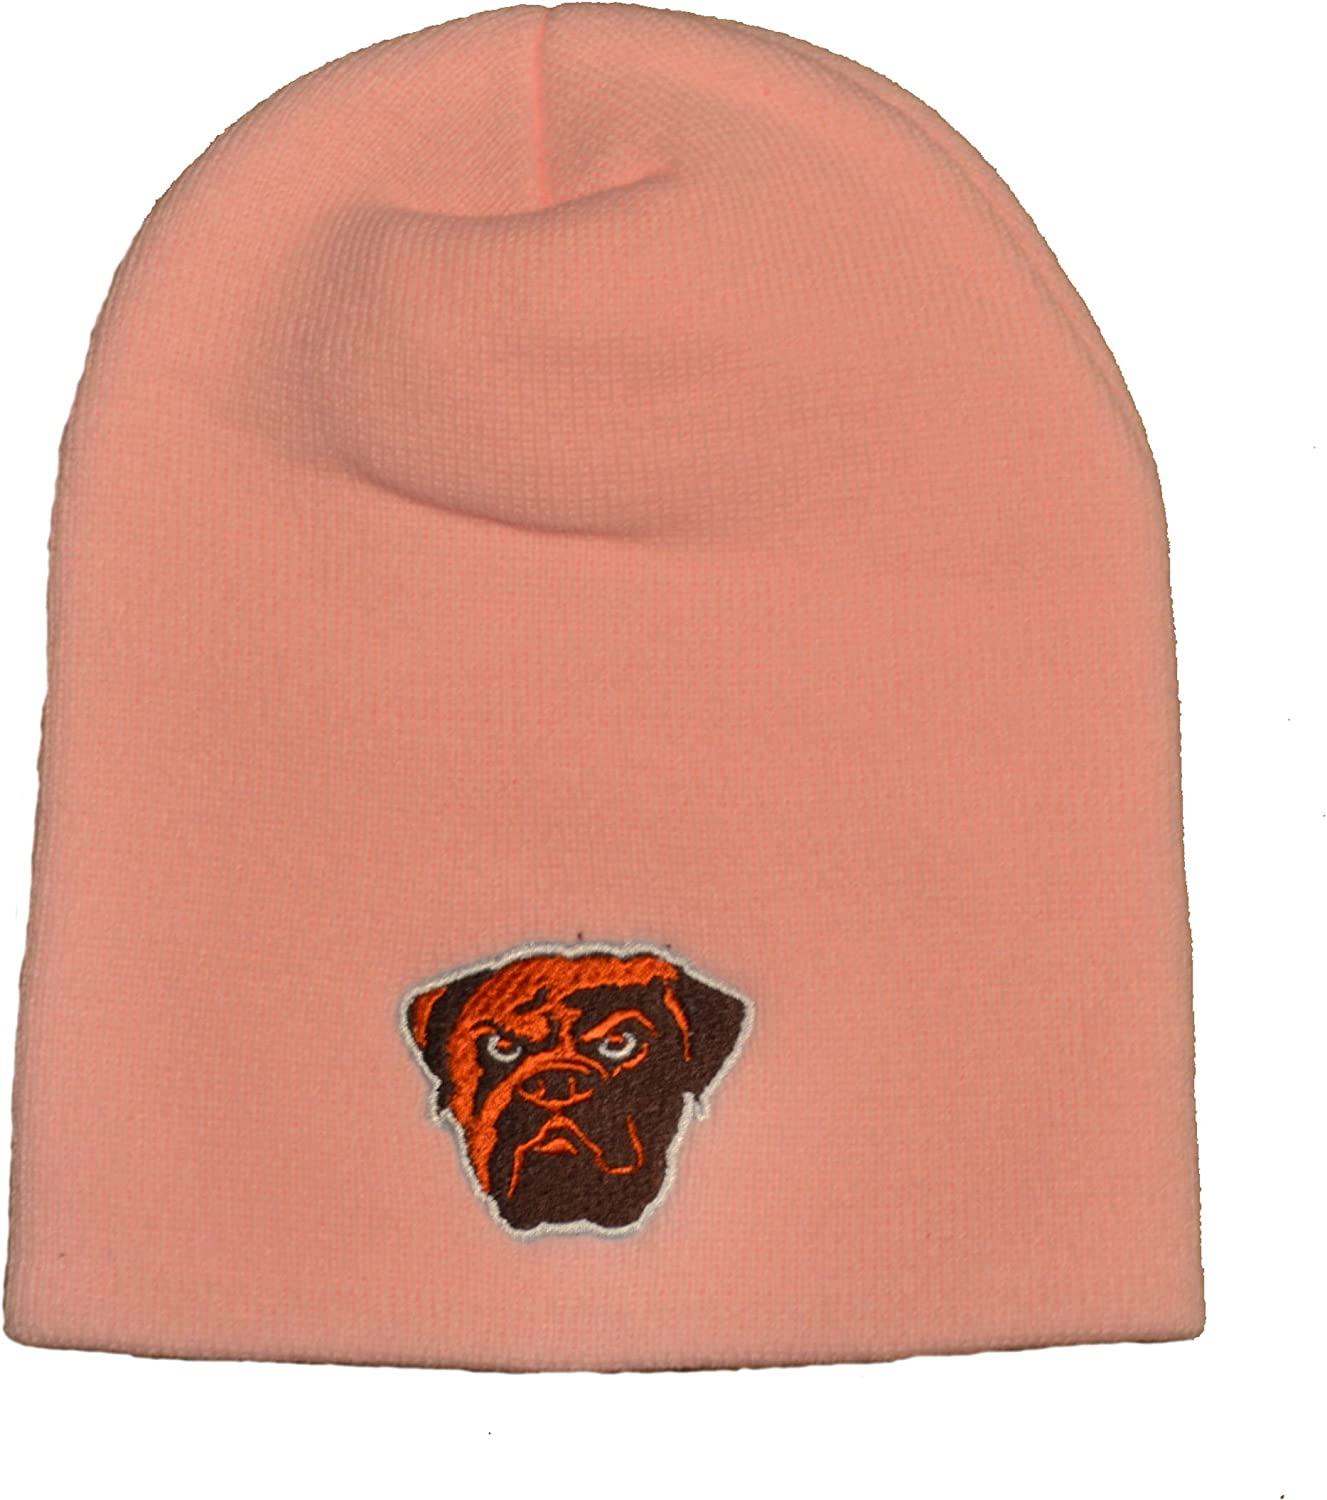 Reebok Pink Cuffless Beanie Hat NFL Ladies Football Knit Skull Cap